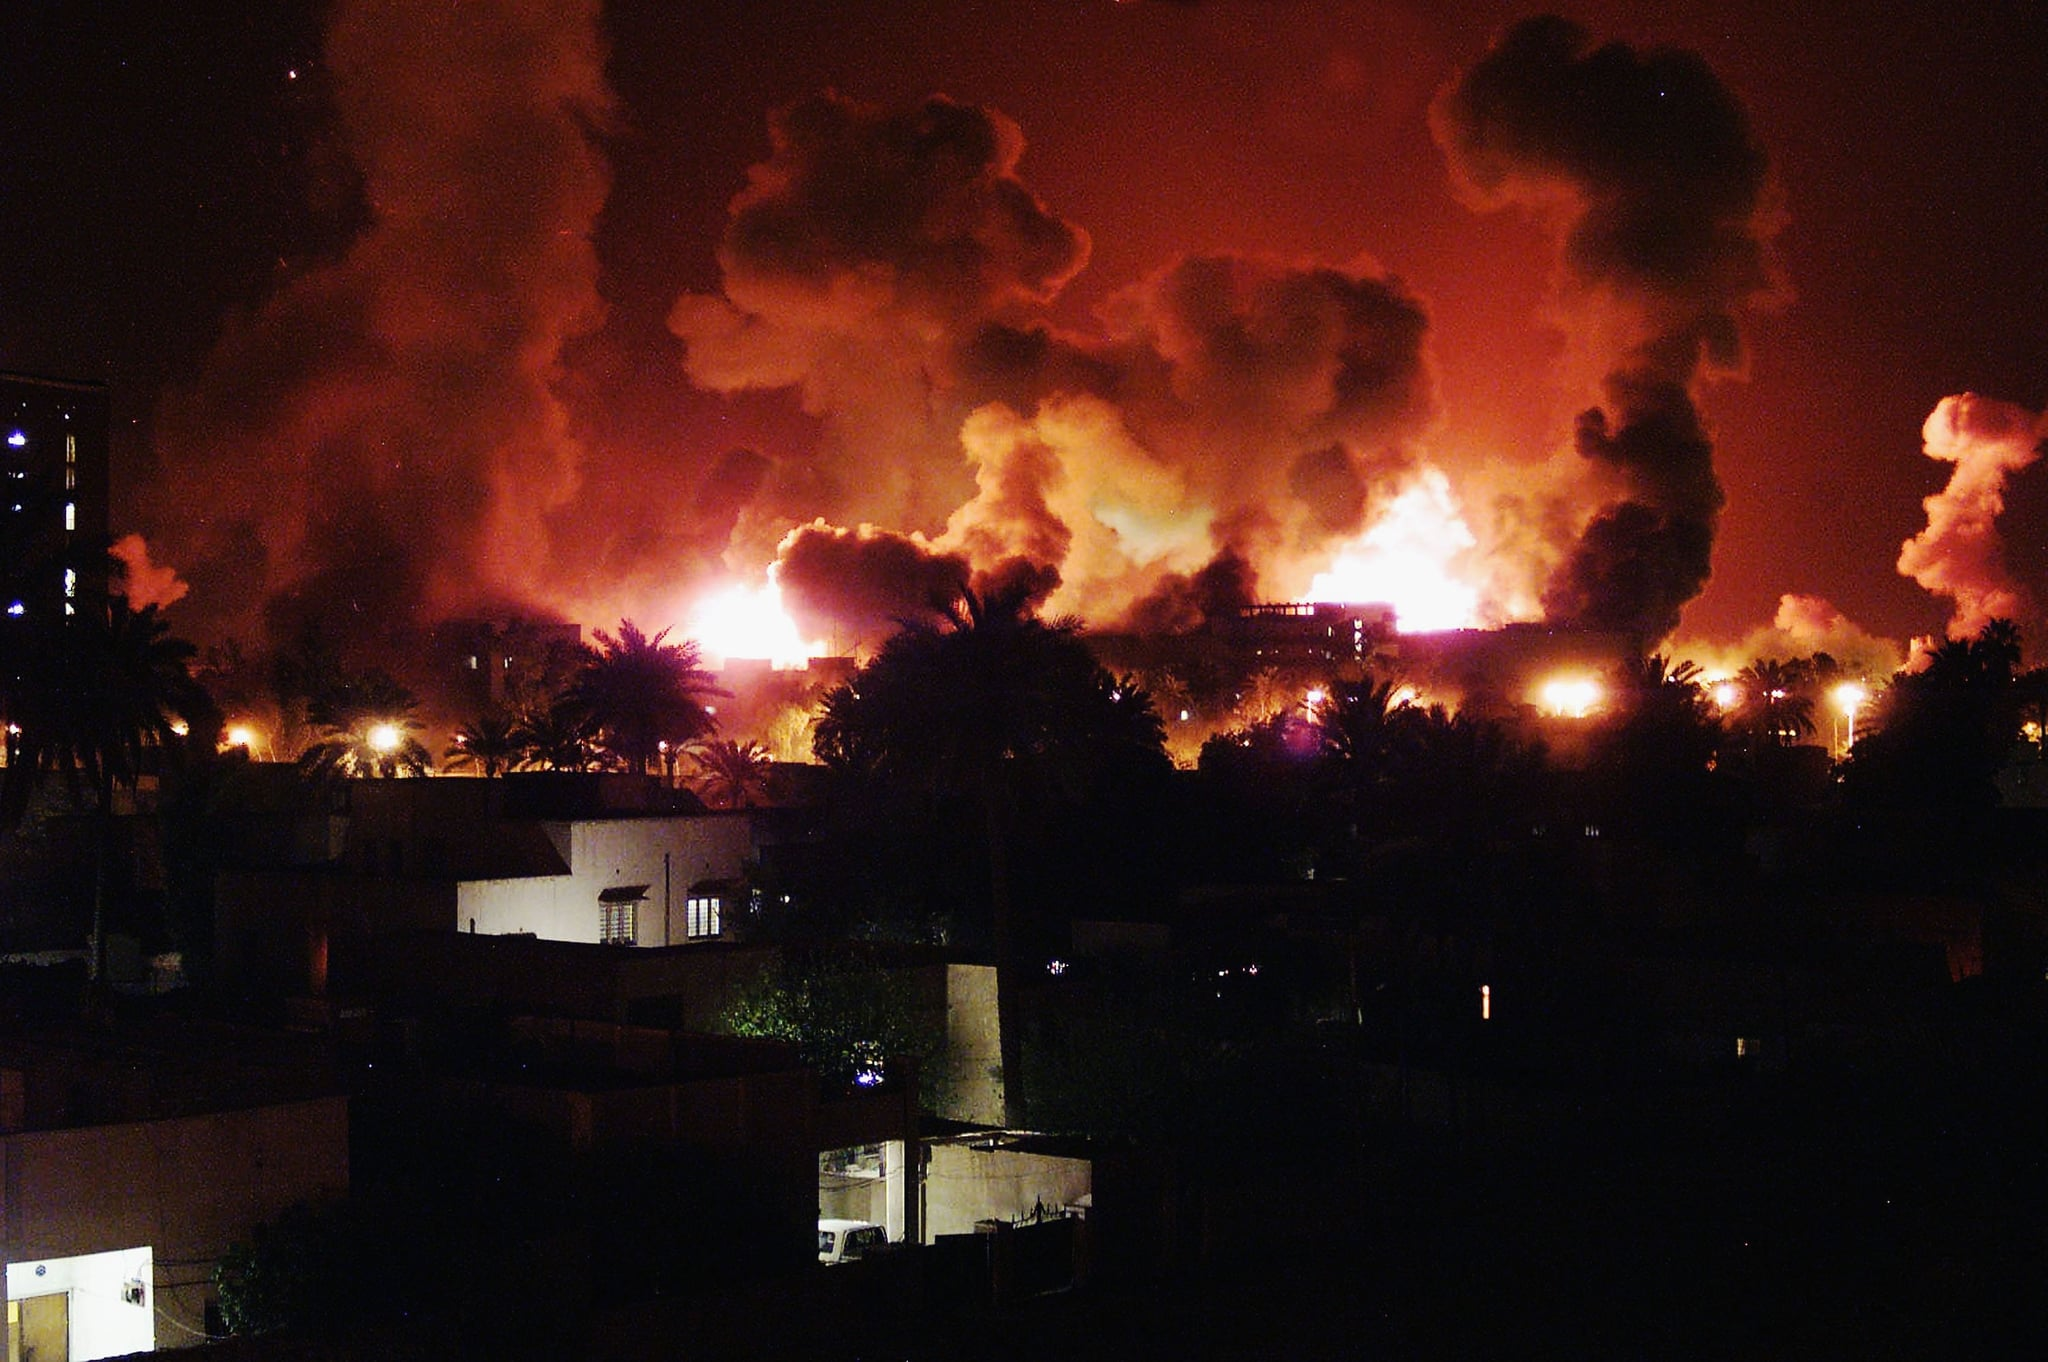 Explosions during the first few minutes of a massive air attack on March 21, 2003 in Baghdad, Iraq.